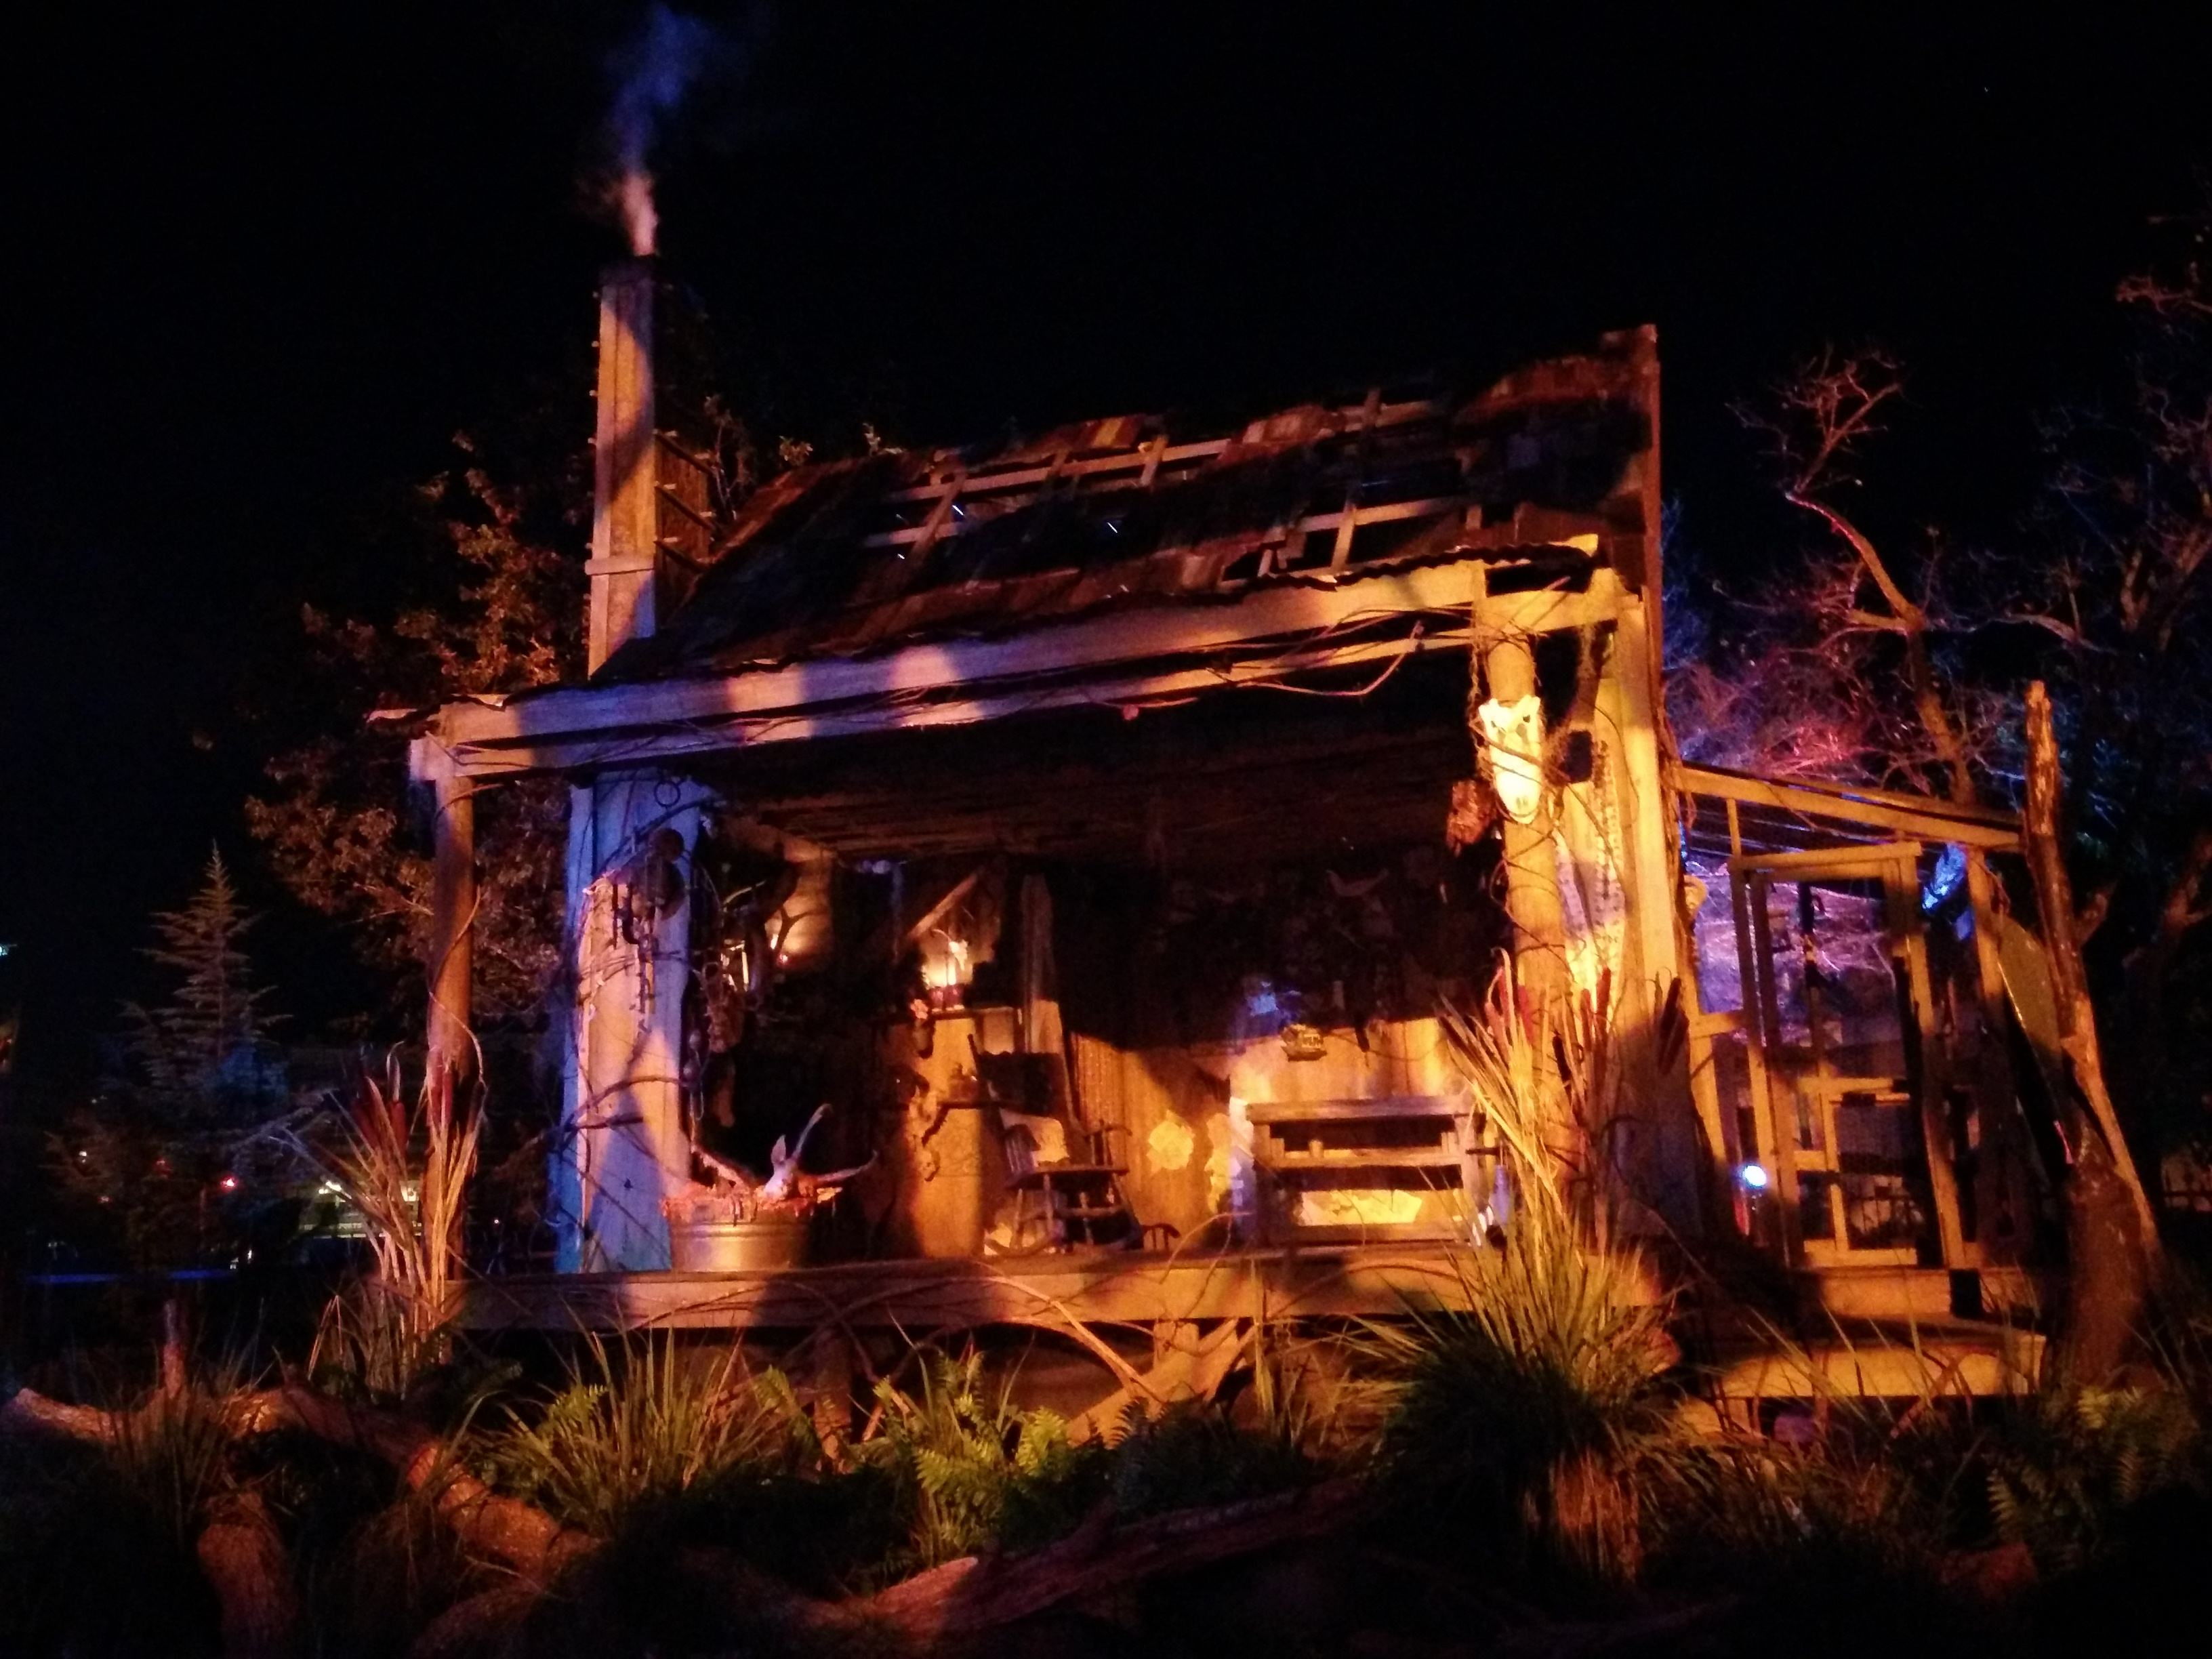 Stylized Horror Miami Discount Tickets House Photo By Nick Gangemi Photo Editor Inside Spook On Halloween Horror Haunted Houses Miami House Horror Miami Review curbed House Of Horror Miami